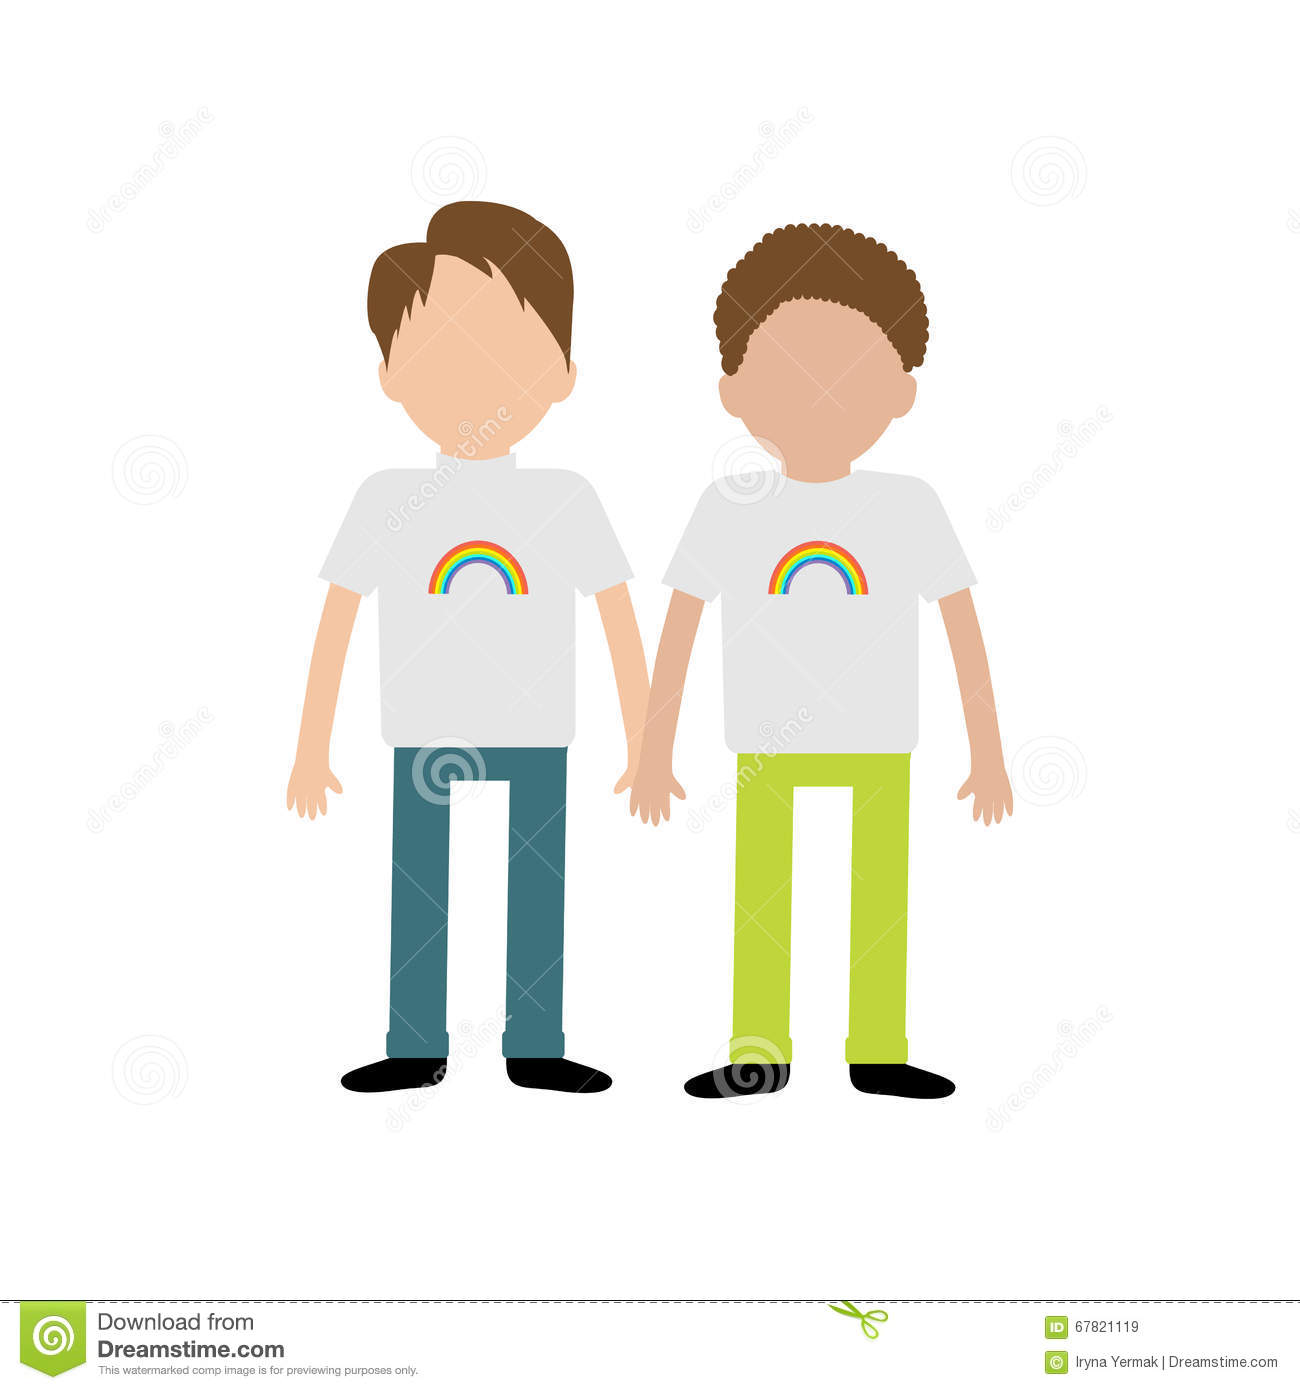 Couple shirt design download - Boy Couple Holding Hands Rainbow On Shirt Greeting Card Lgbt